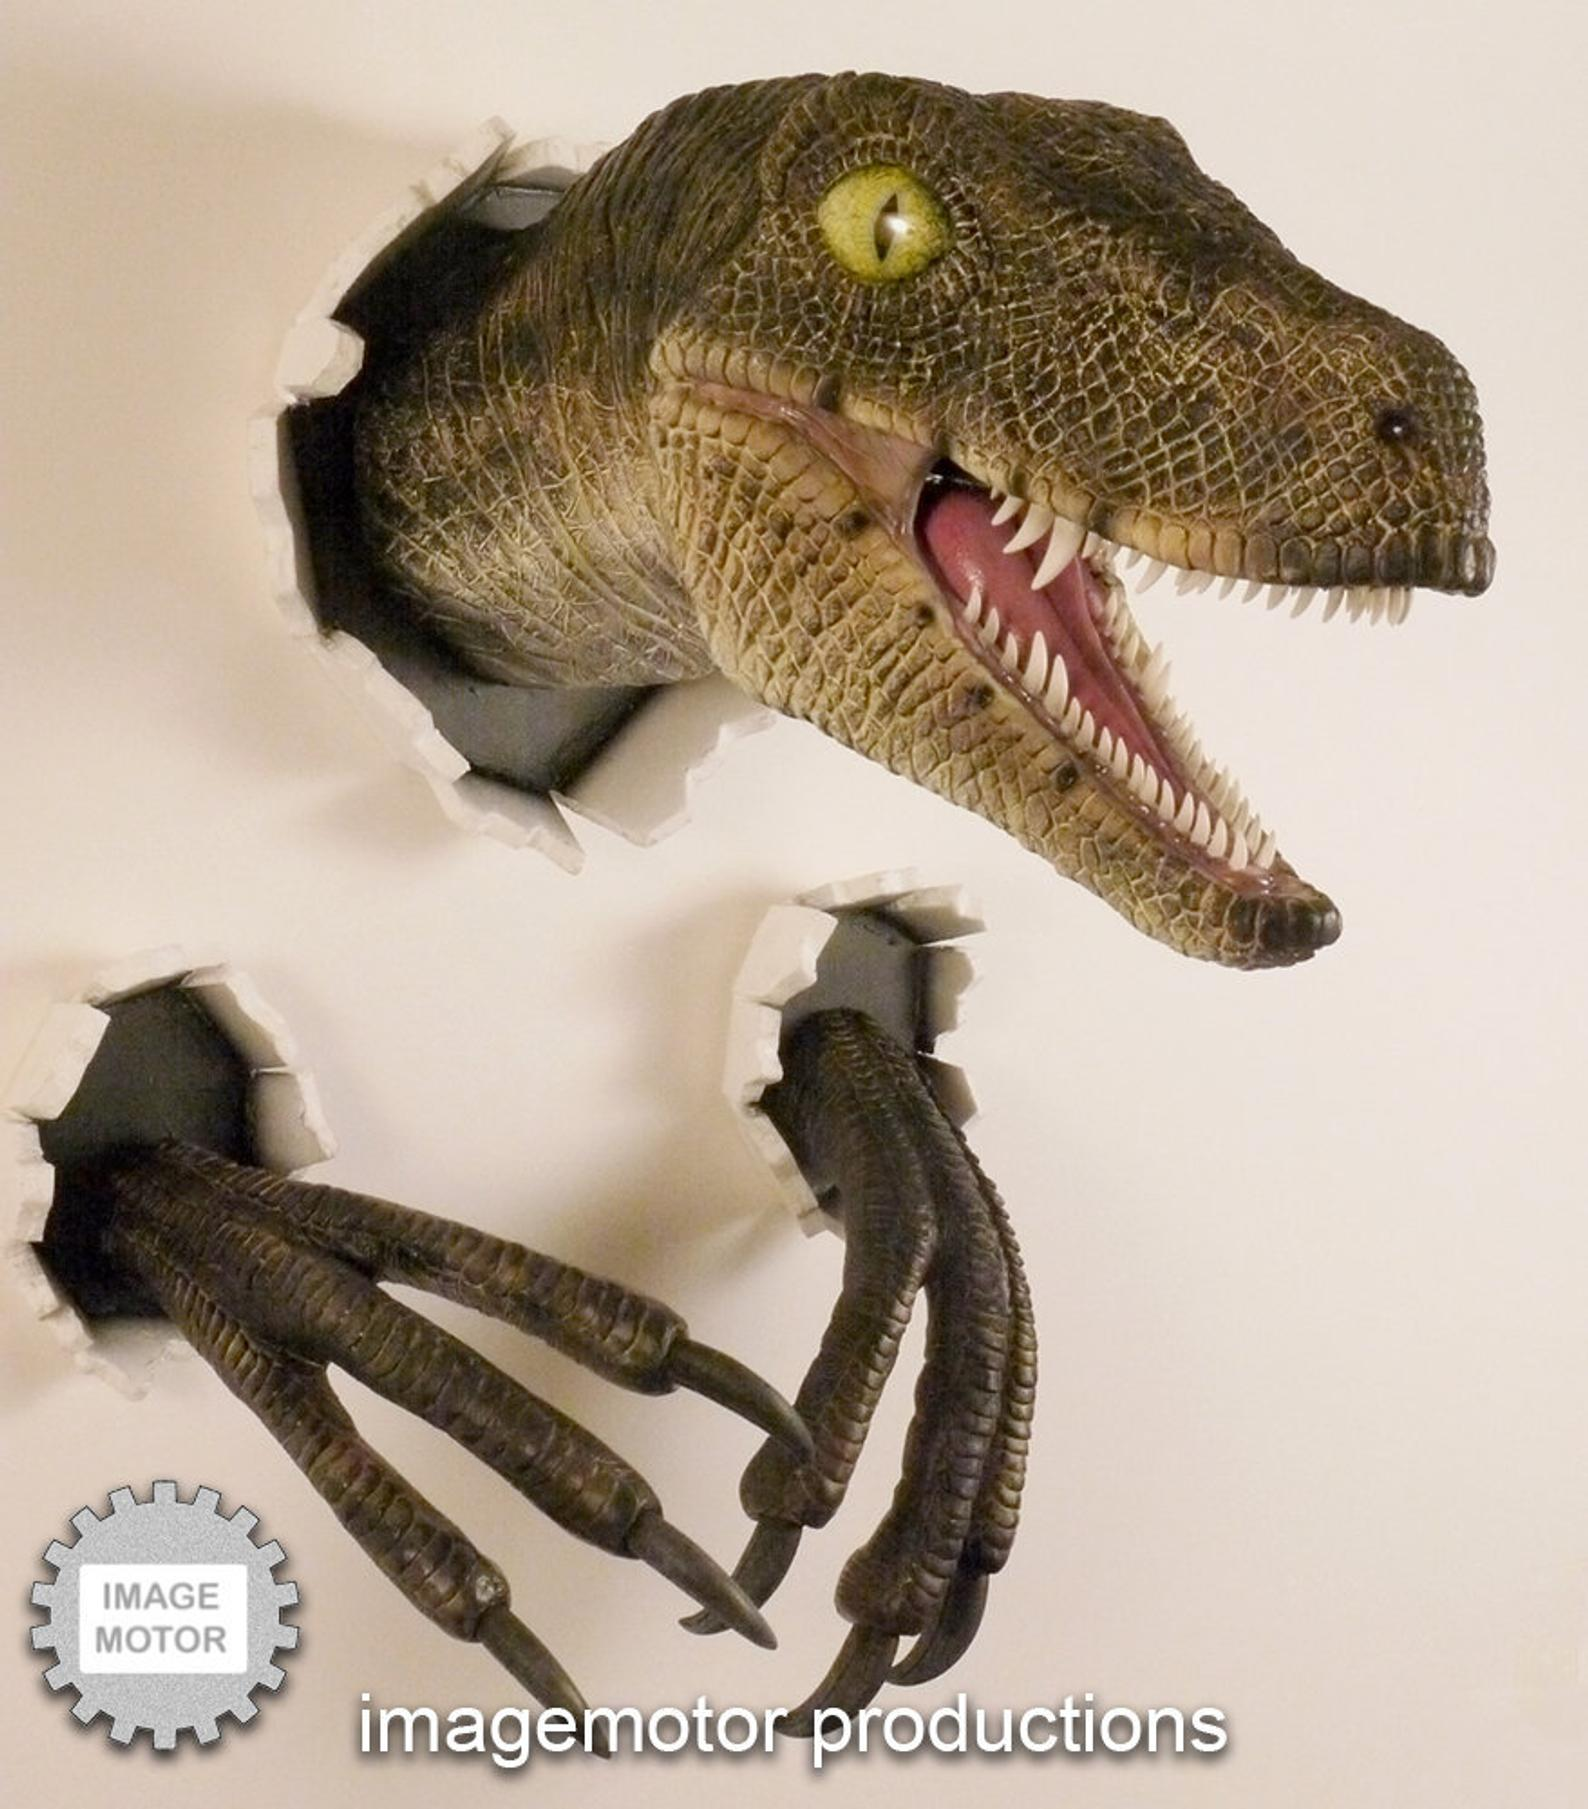 Wall Bursting Dinosaur Wall Decor by Gifter World